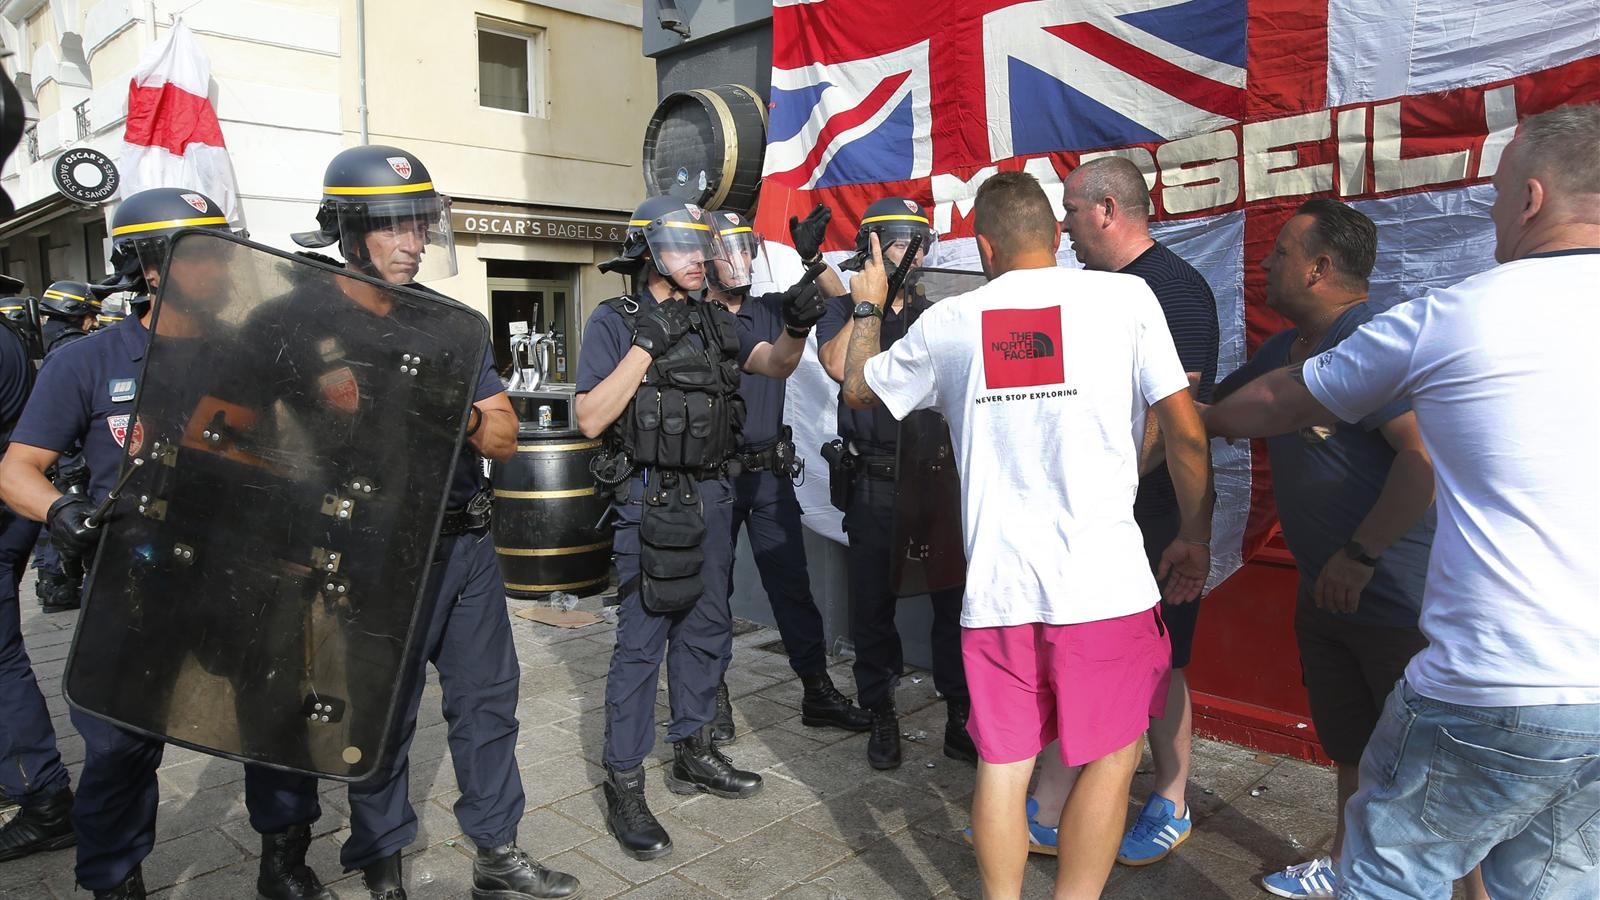 Eyewitness view: English disease not driven by Marseille